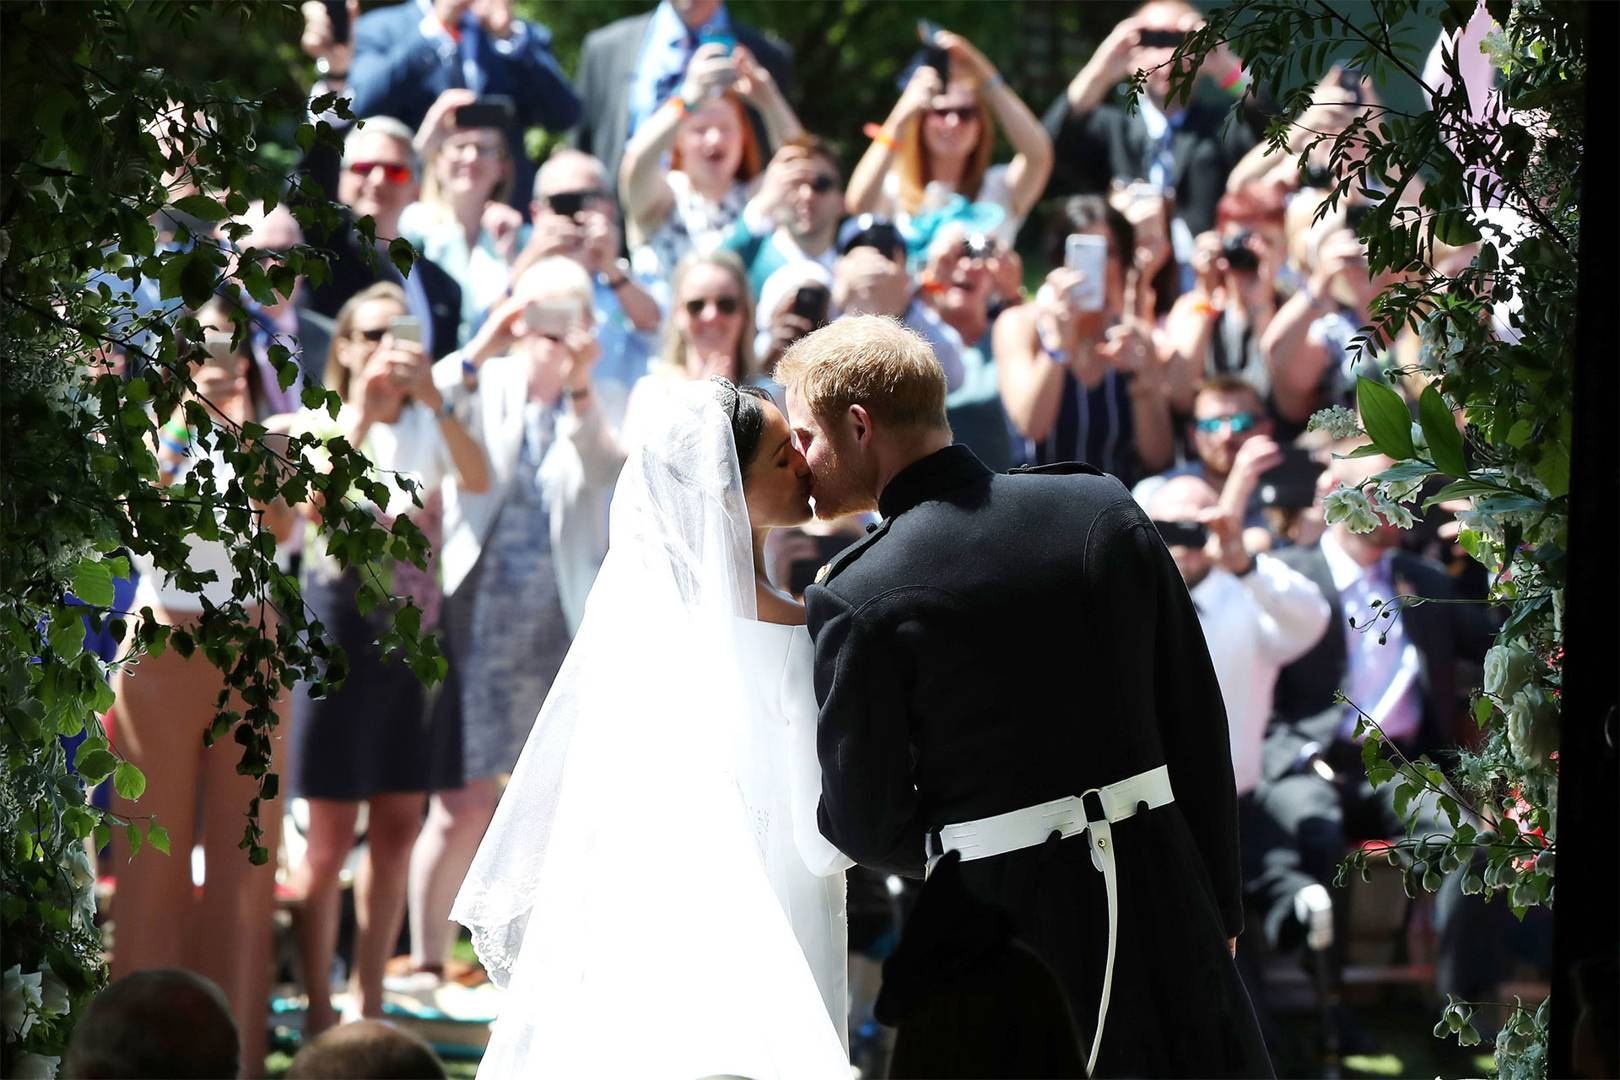 The Best Prince Harry And Meghan Markle Wedding Pictures